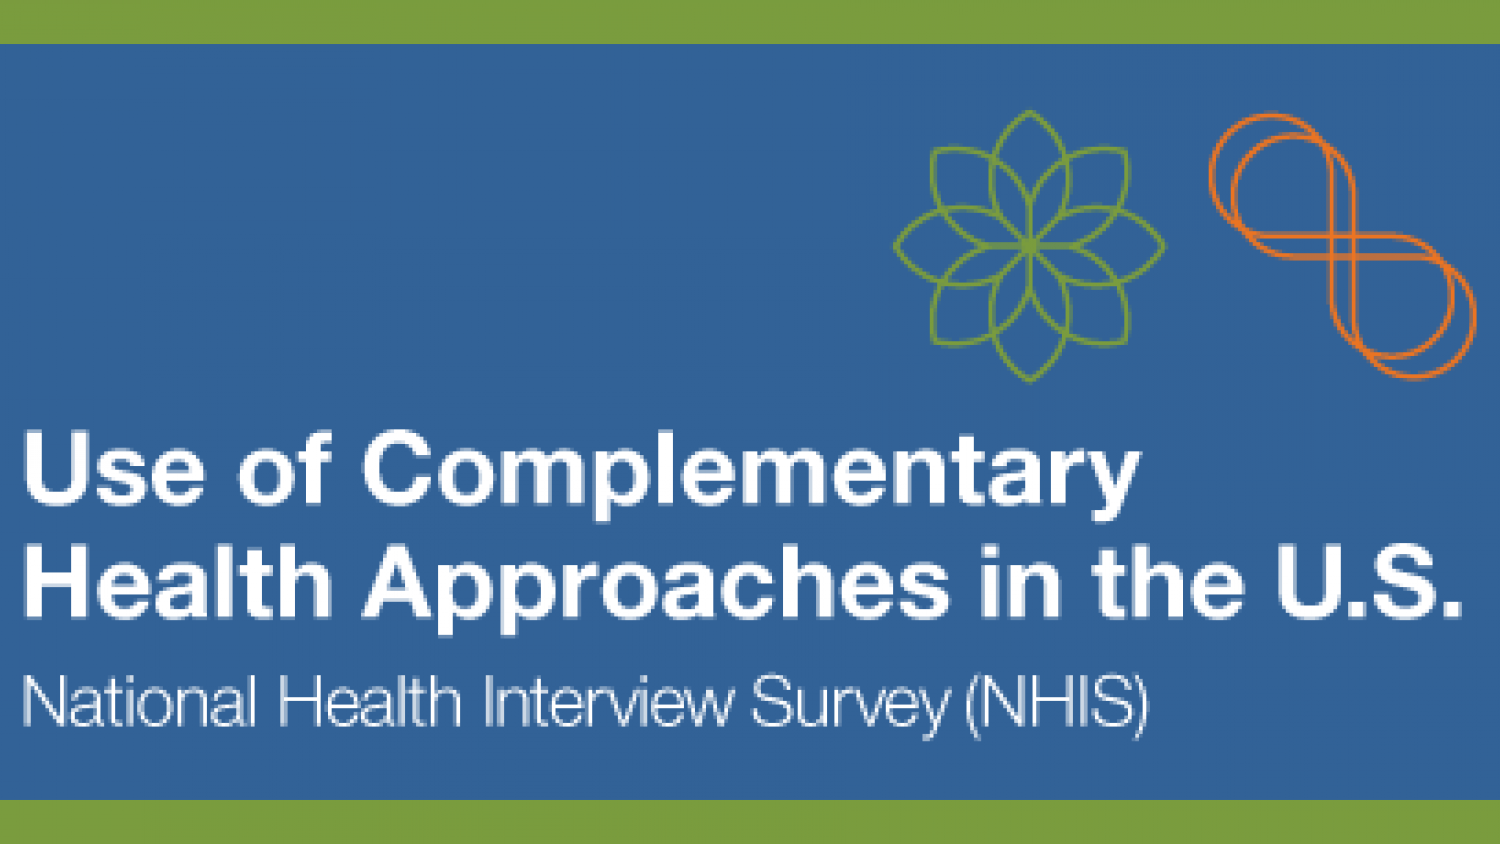 Use of Complementary Health Approaches in the U.S. National Health Interview Survey (NHIS)